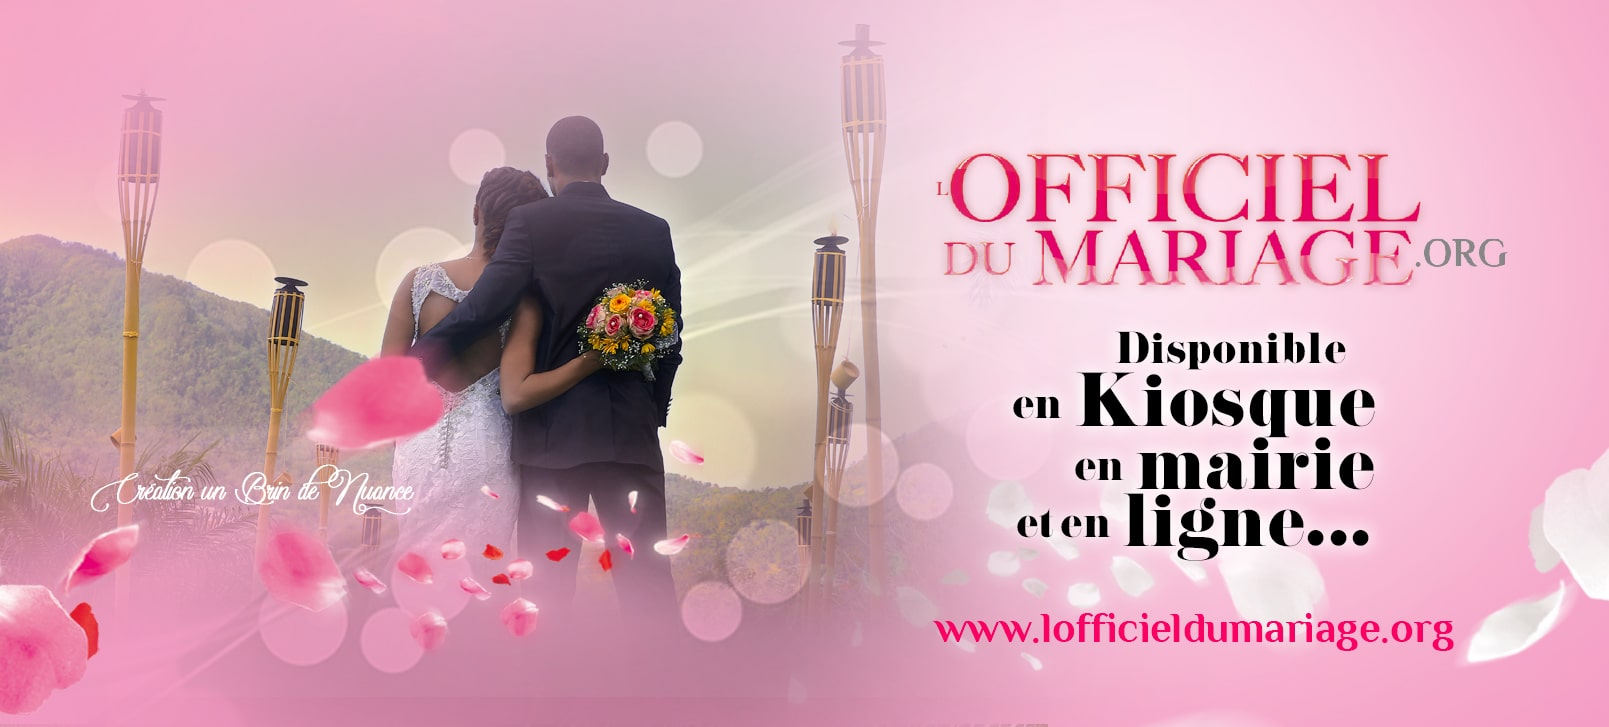 1609x727-OFFICIELDUMARIAGE5